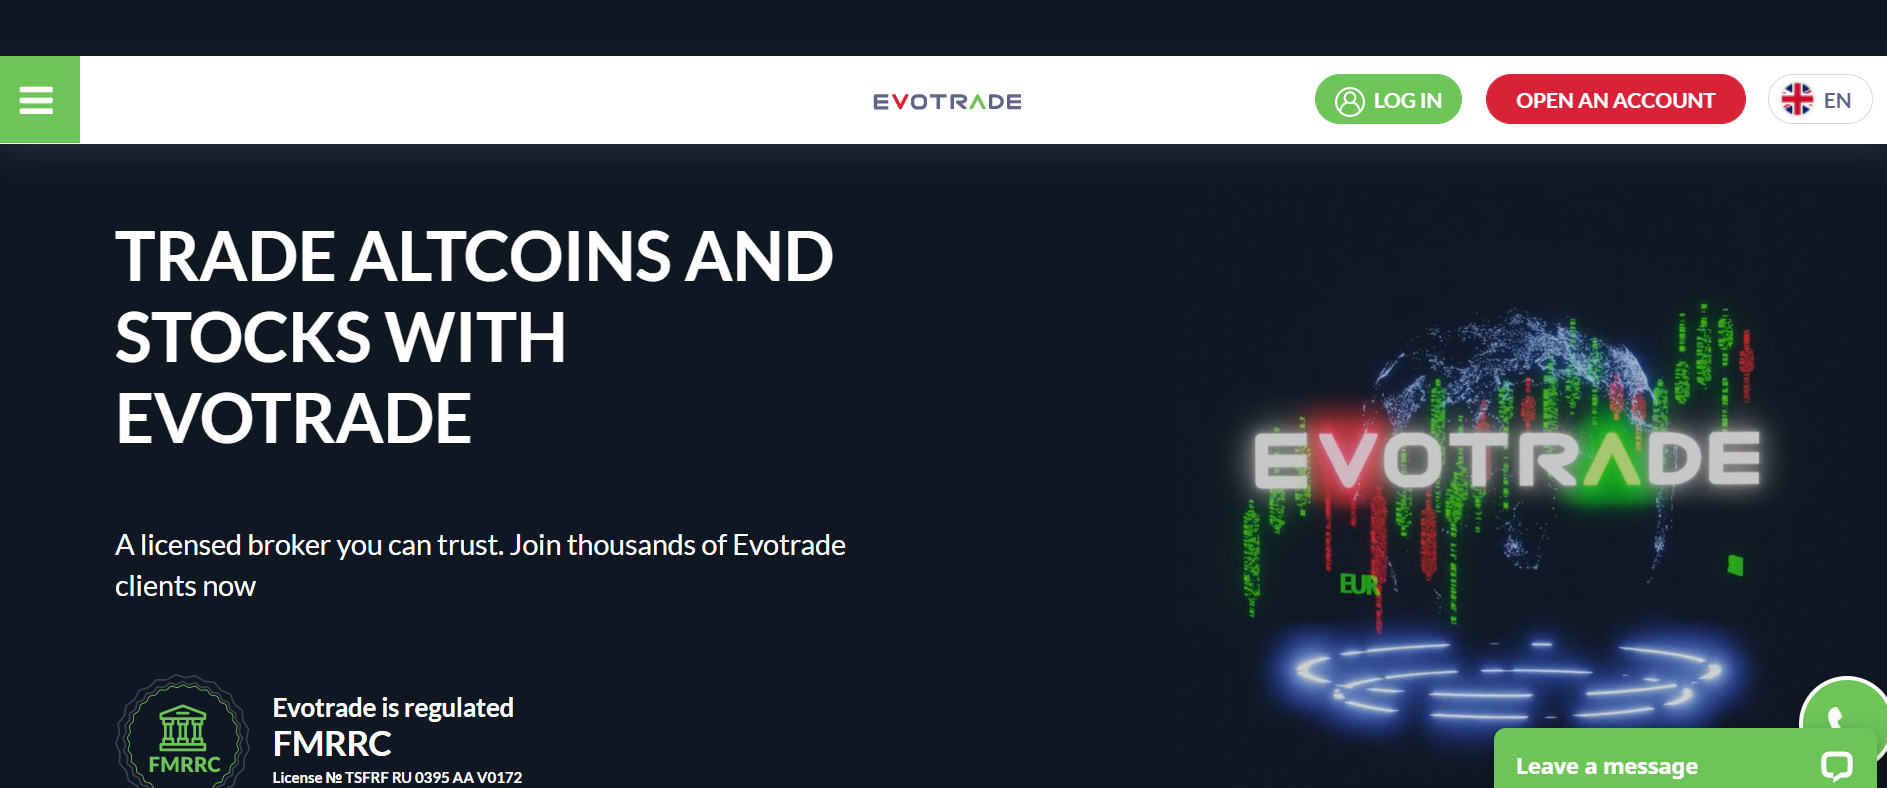 EvoTrade – Are They a Scam?